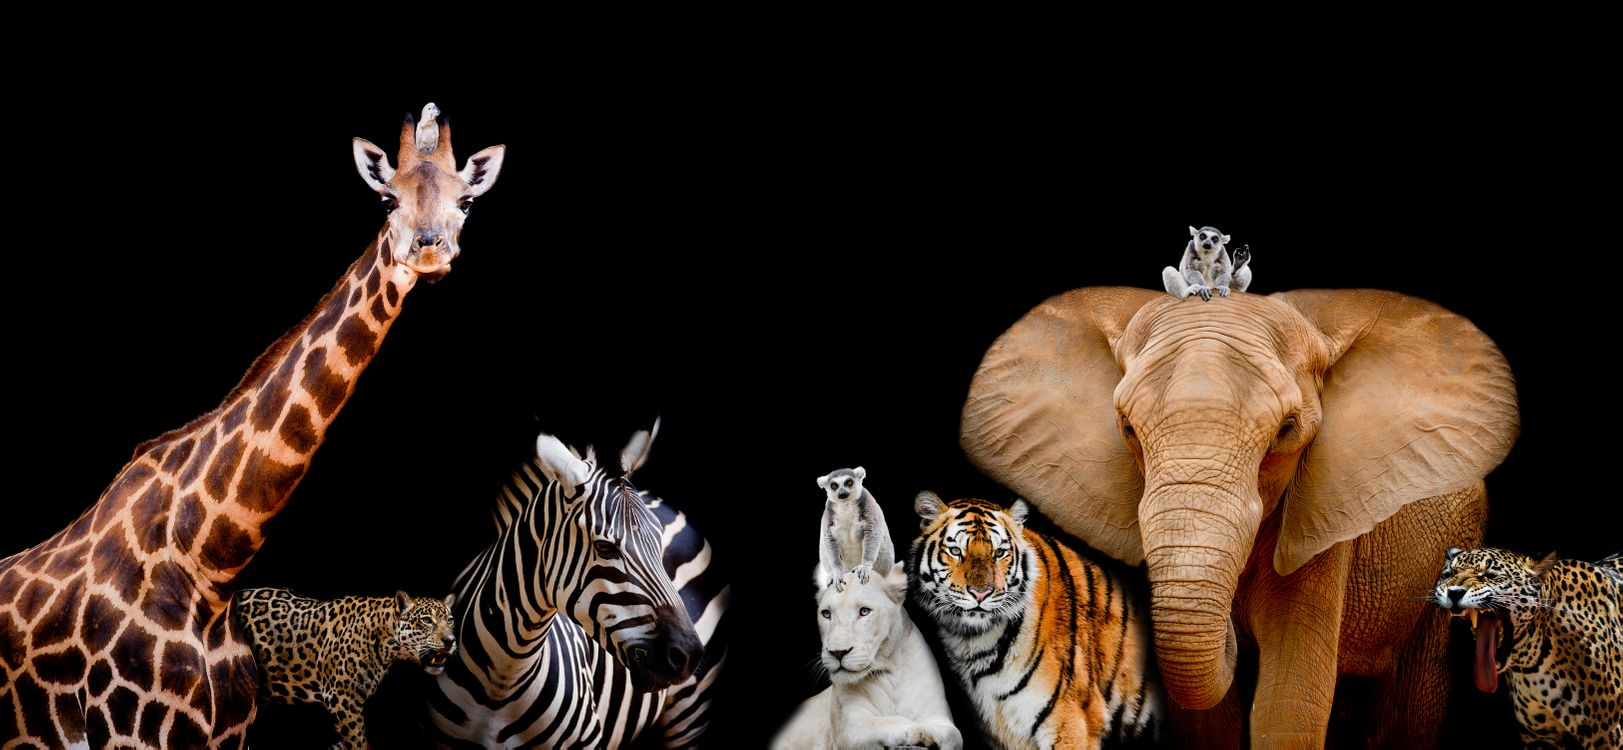 Photos for free A group of animals together on a black background with text area, Animals range from an Elephant, Zebra - to the desktop